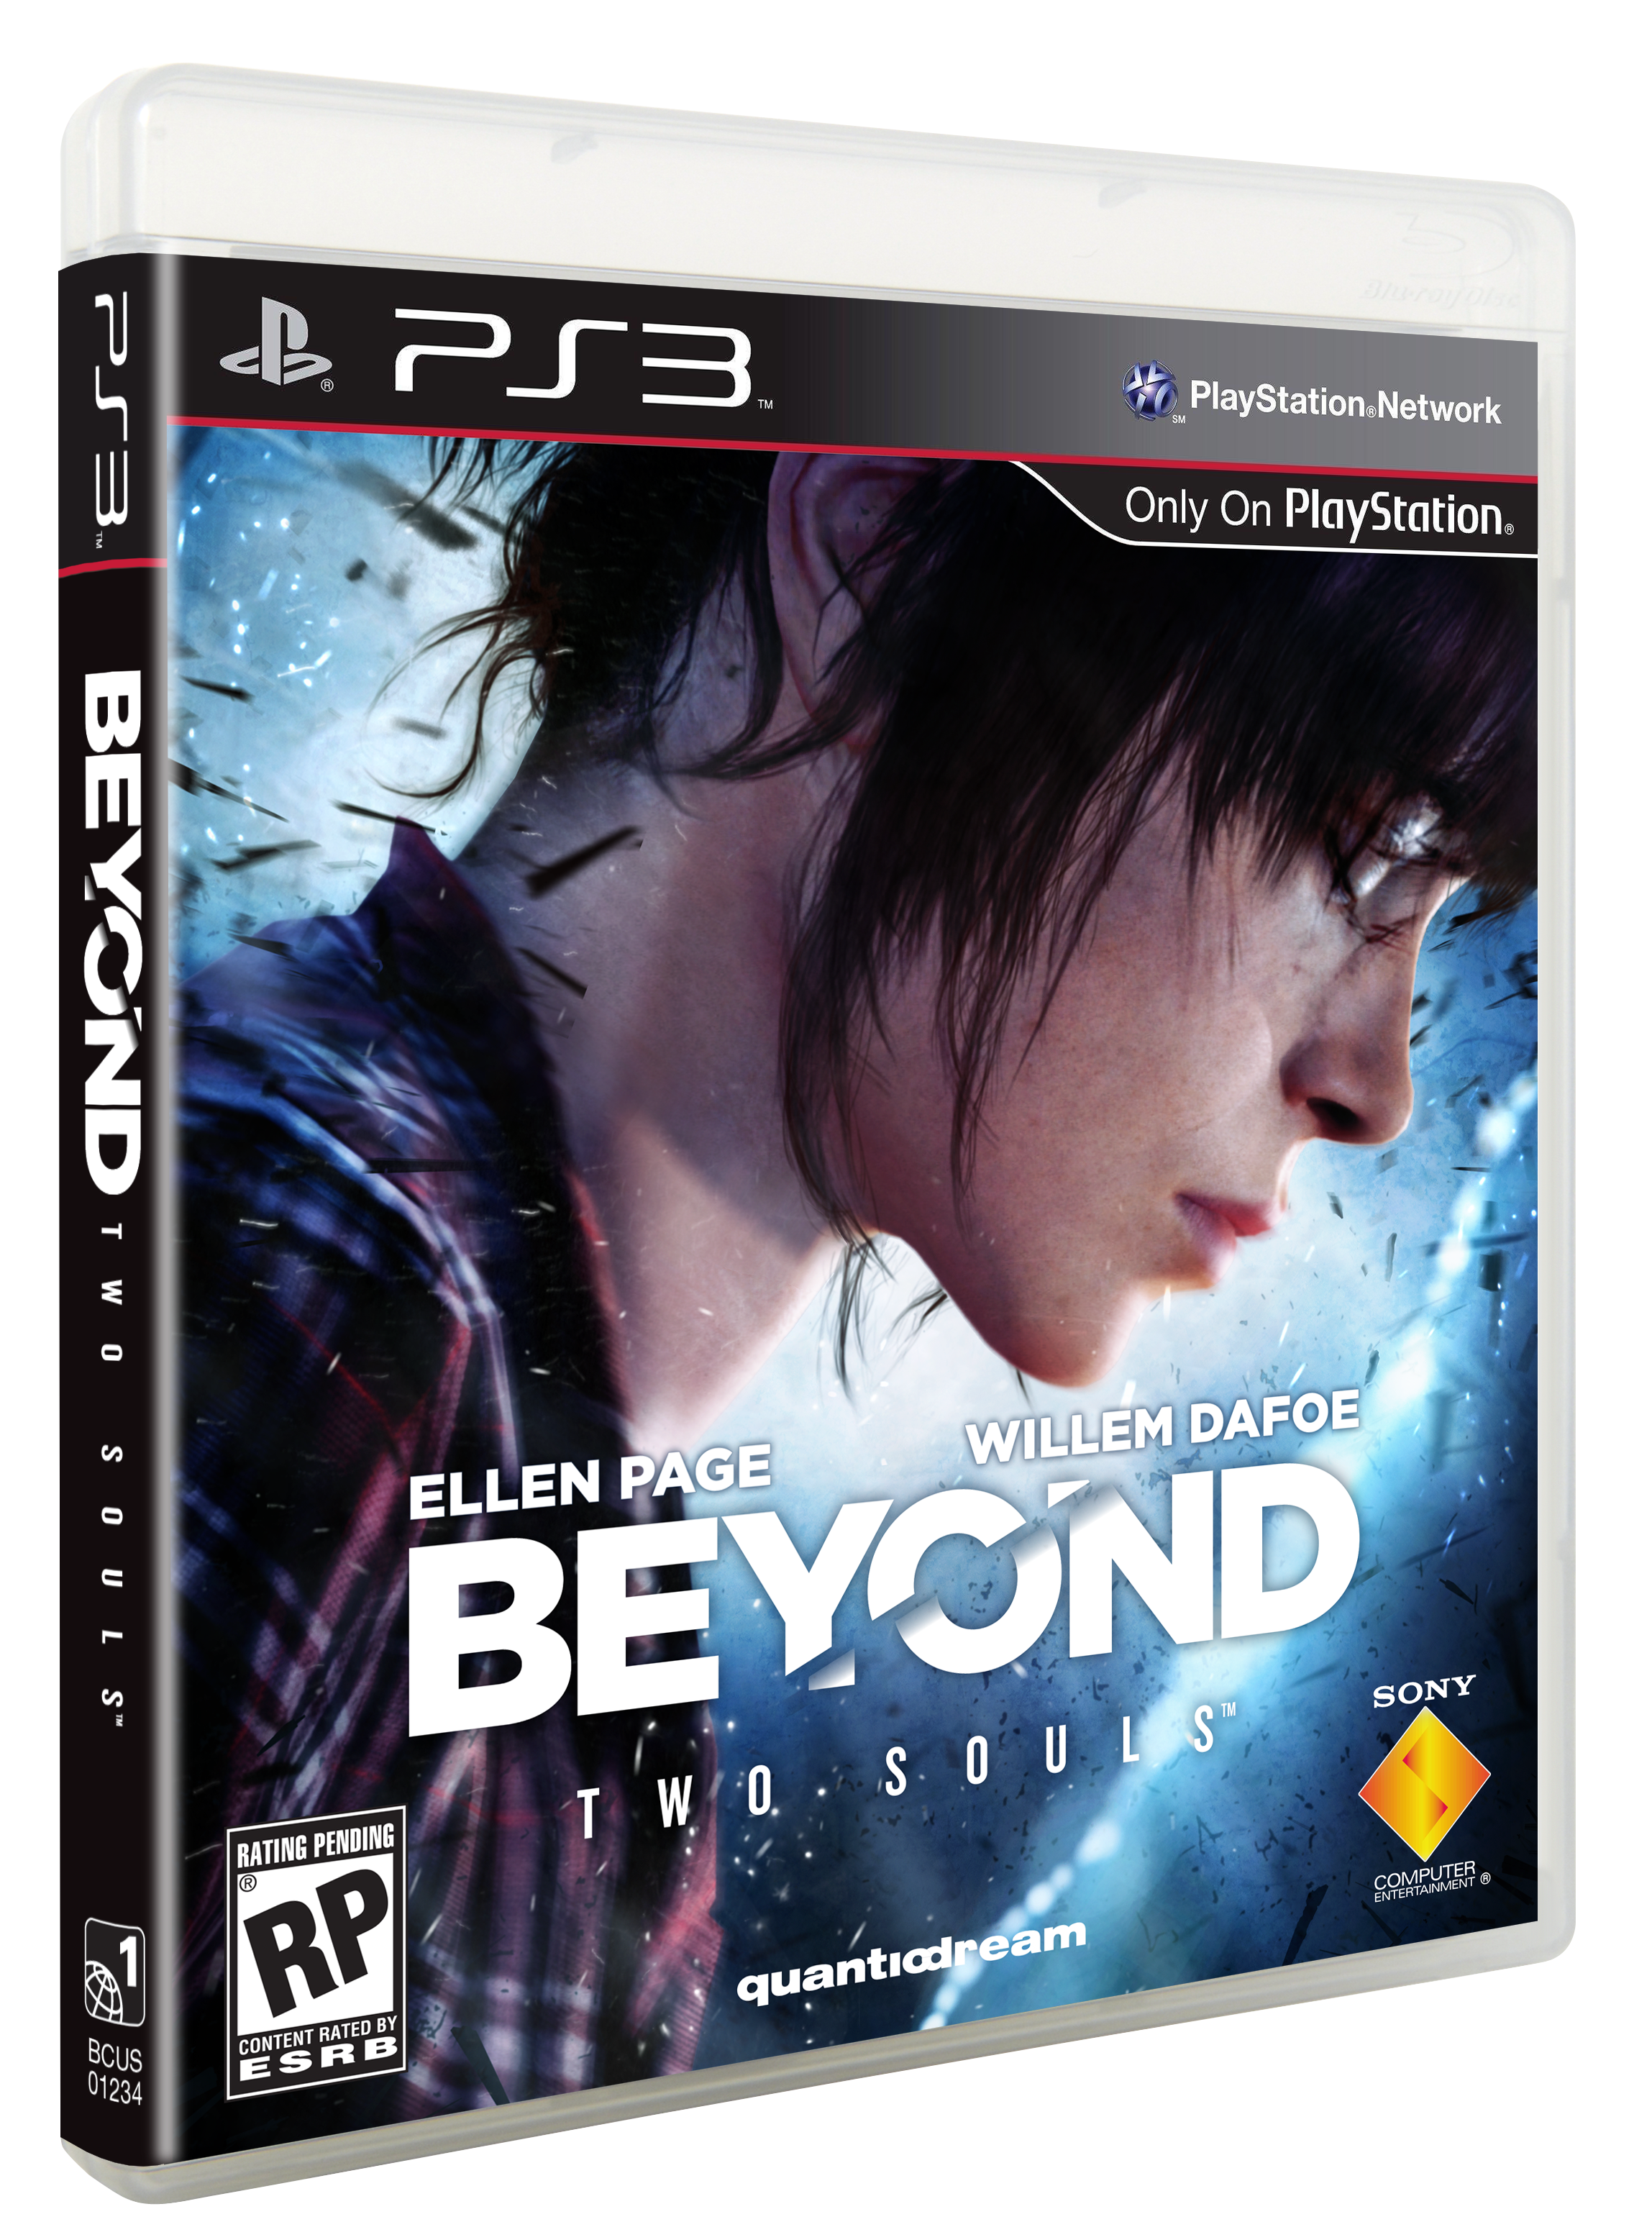 BEYOND_PS3-case angle left_QD